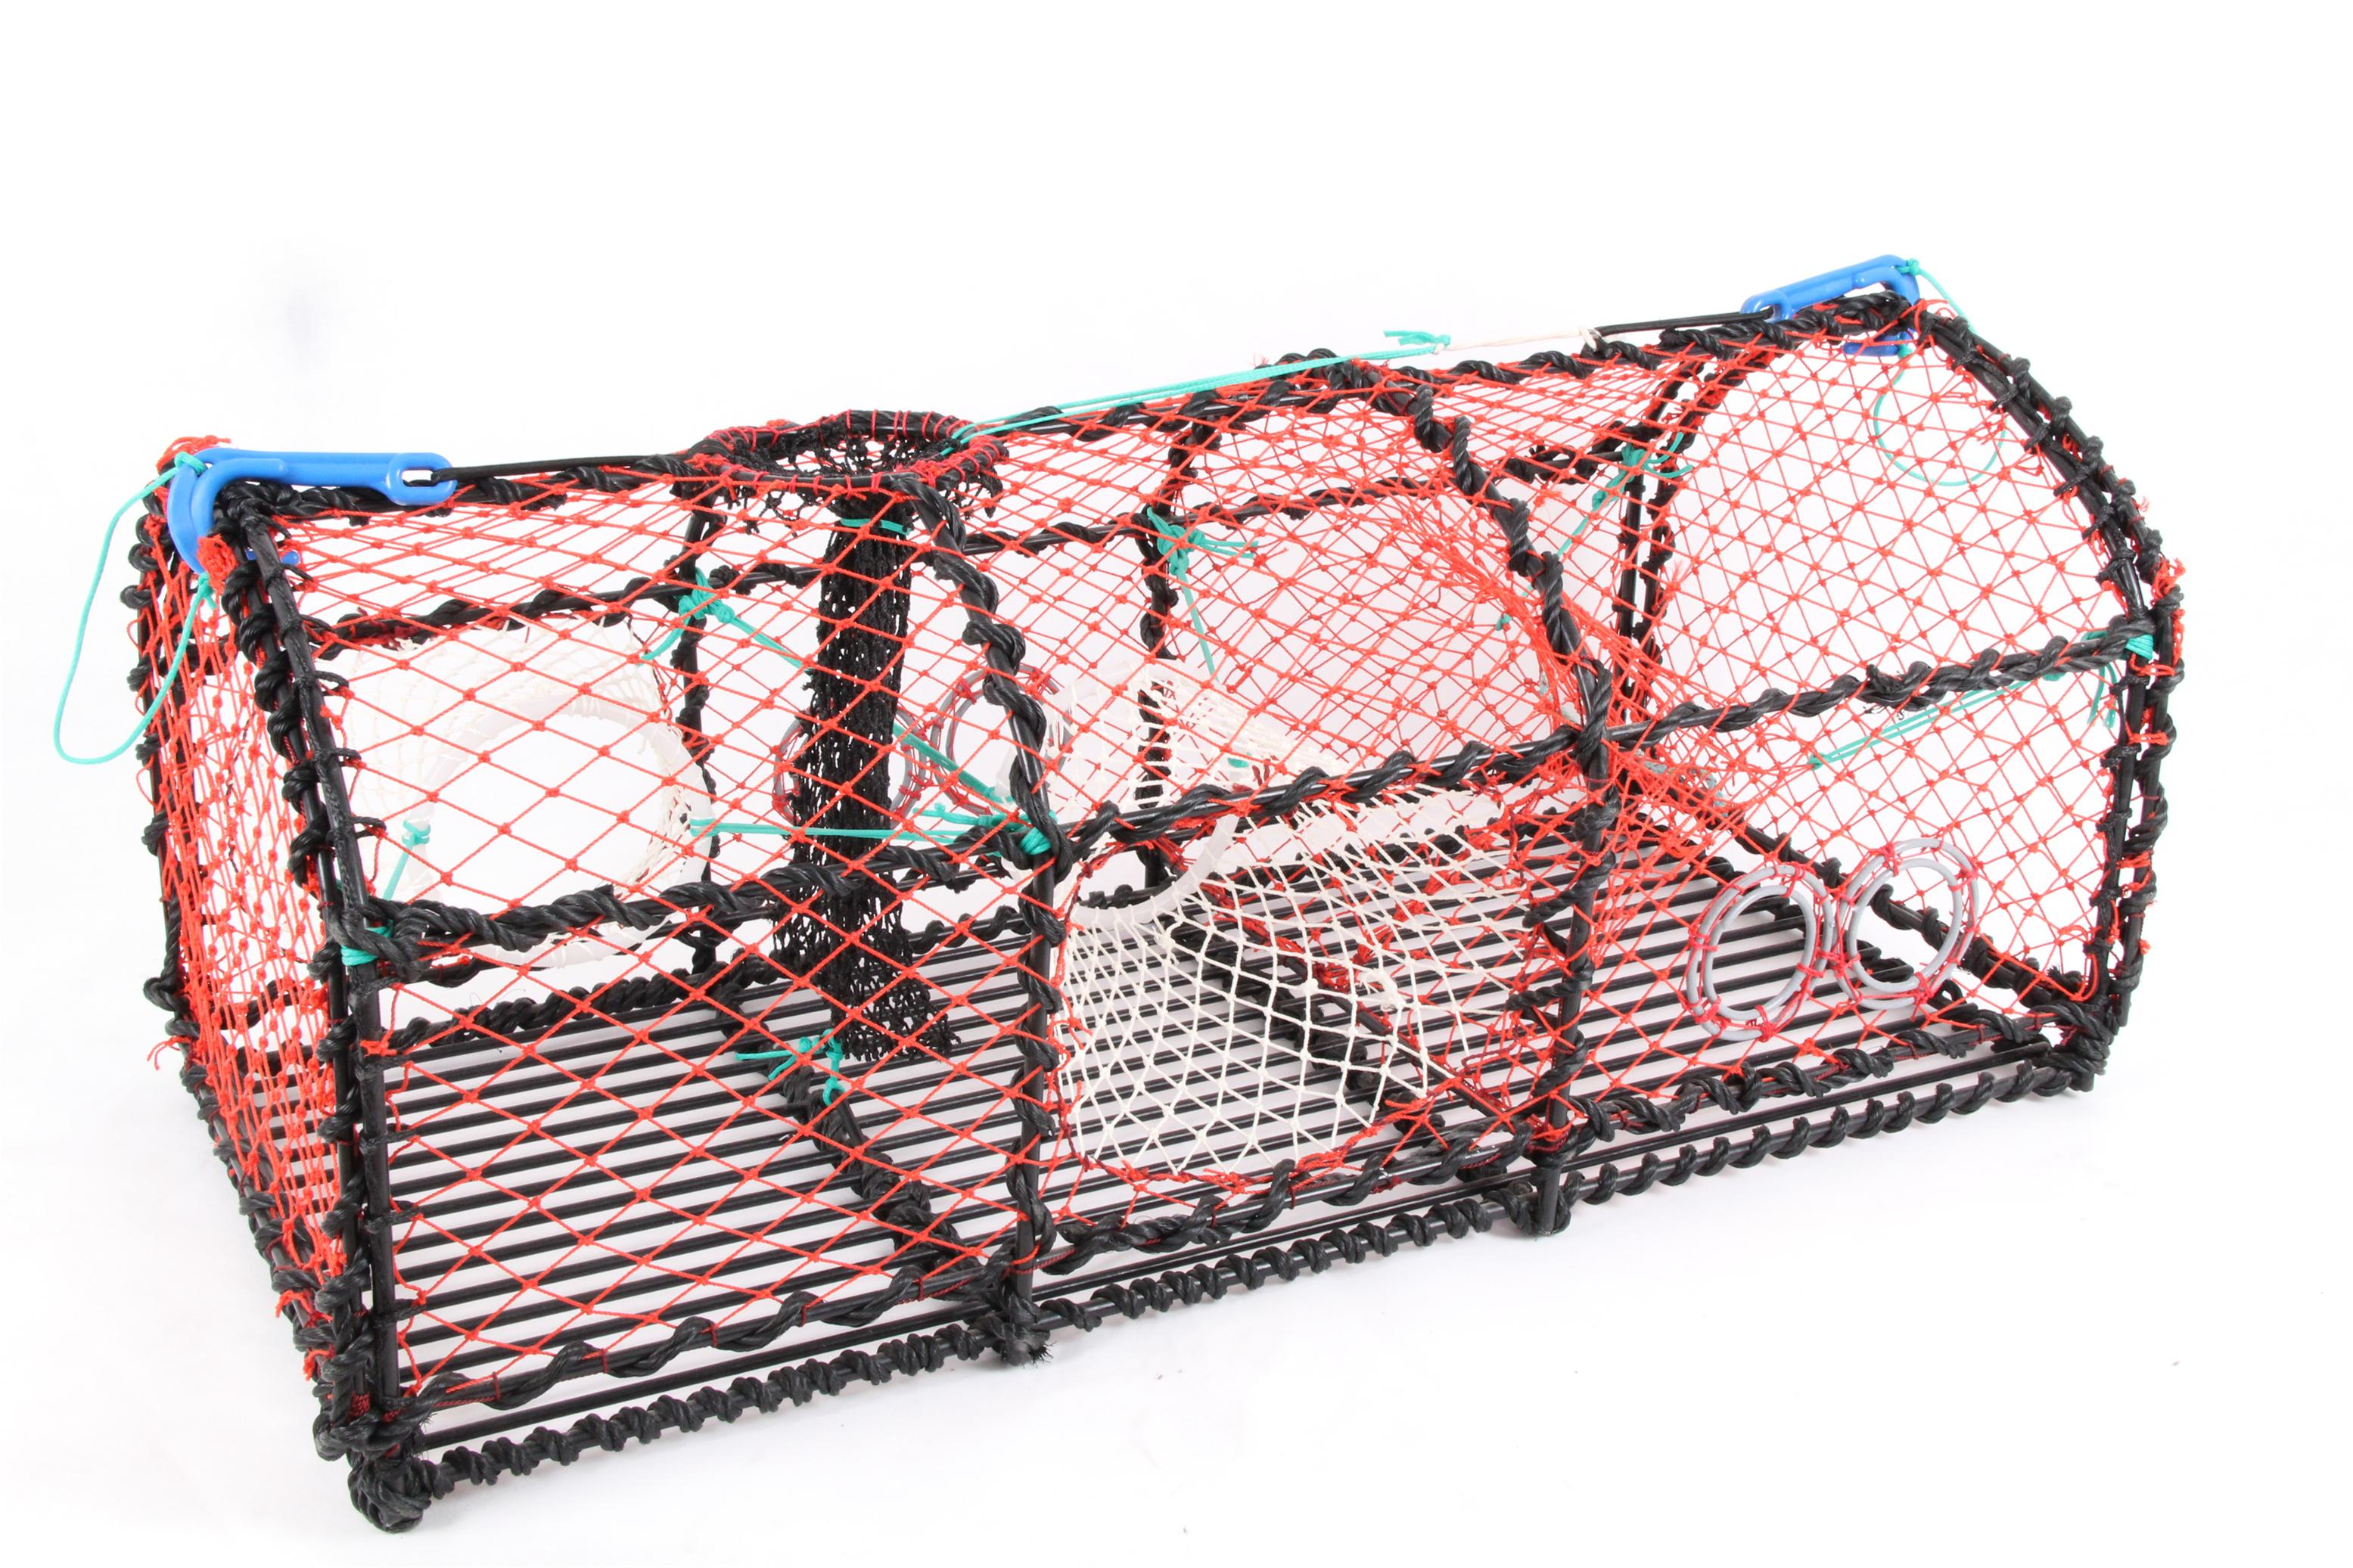 lobster pot, lobster pots, lobster pot net